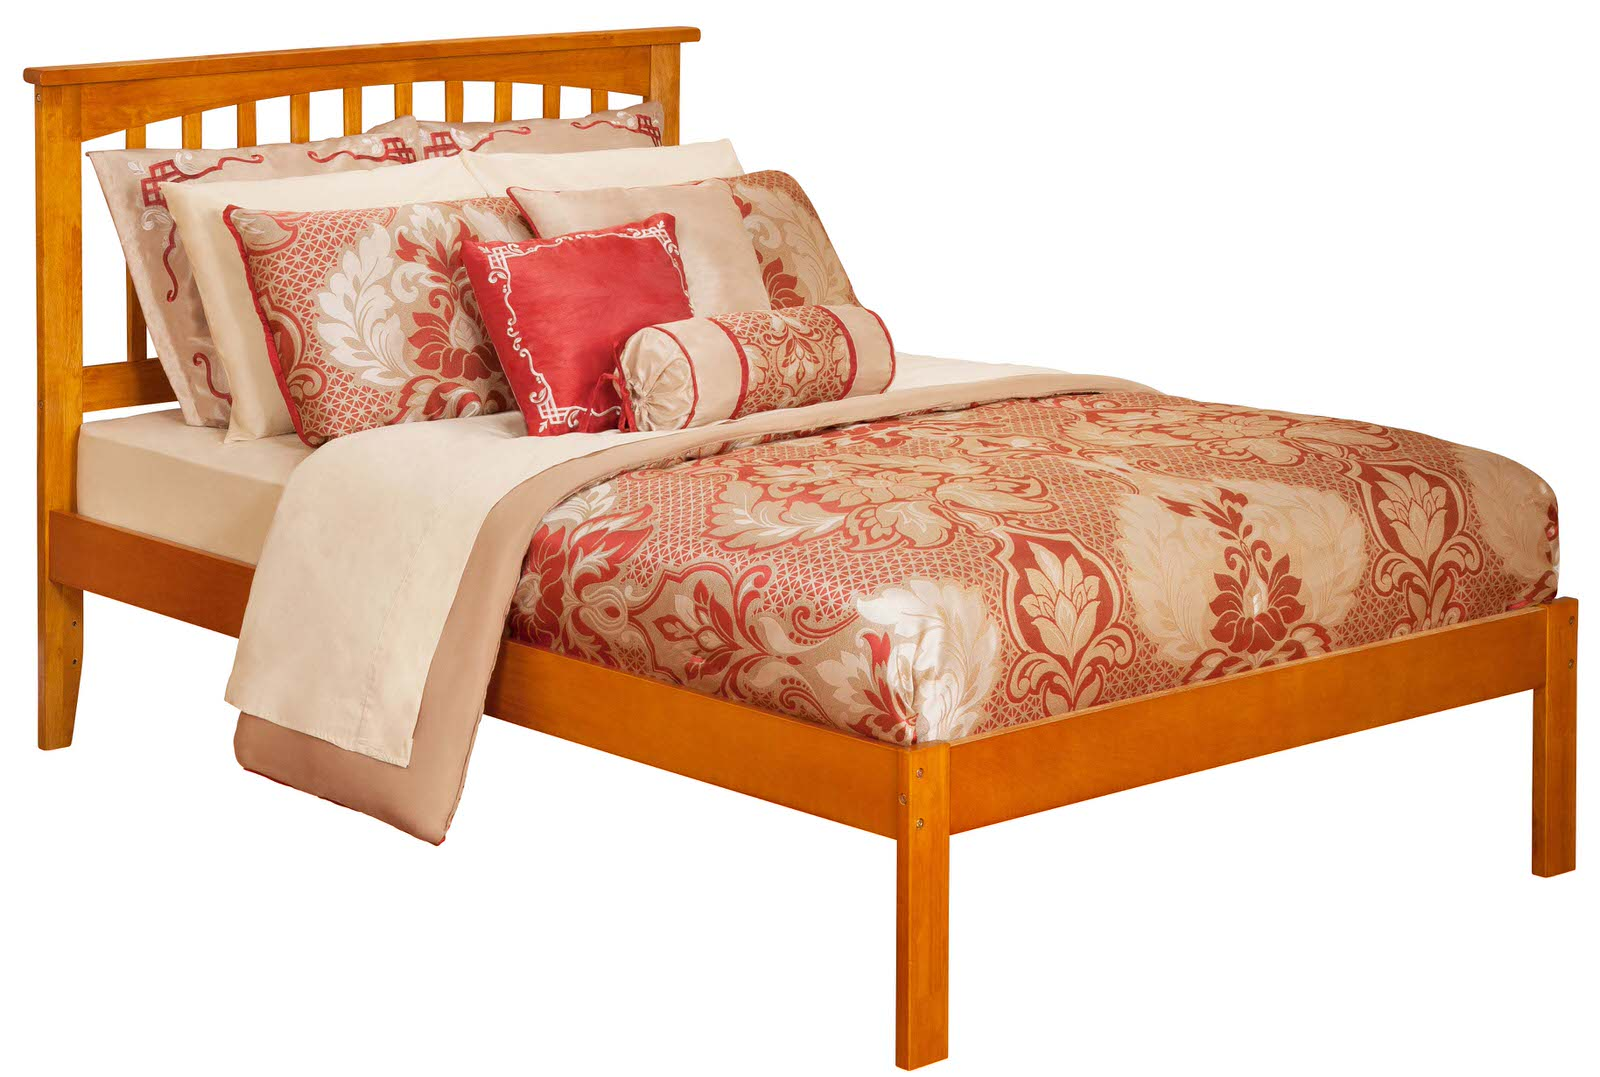 Mission Caramel Latte Platform Bed By Atlantic Furniture